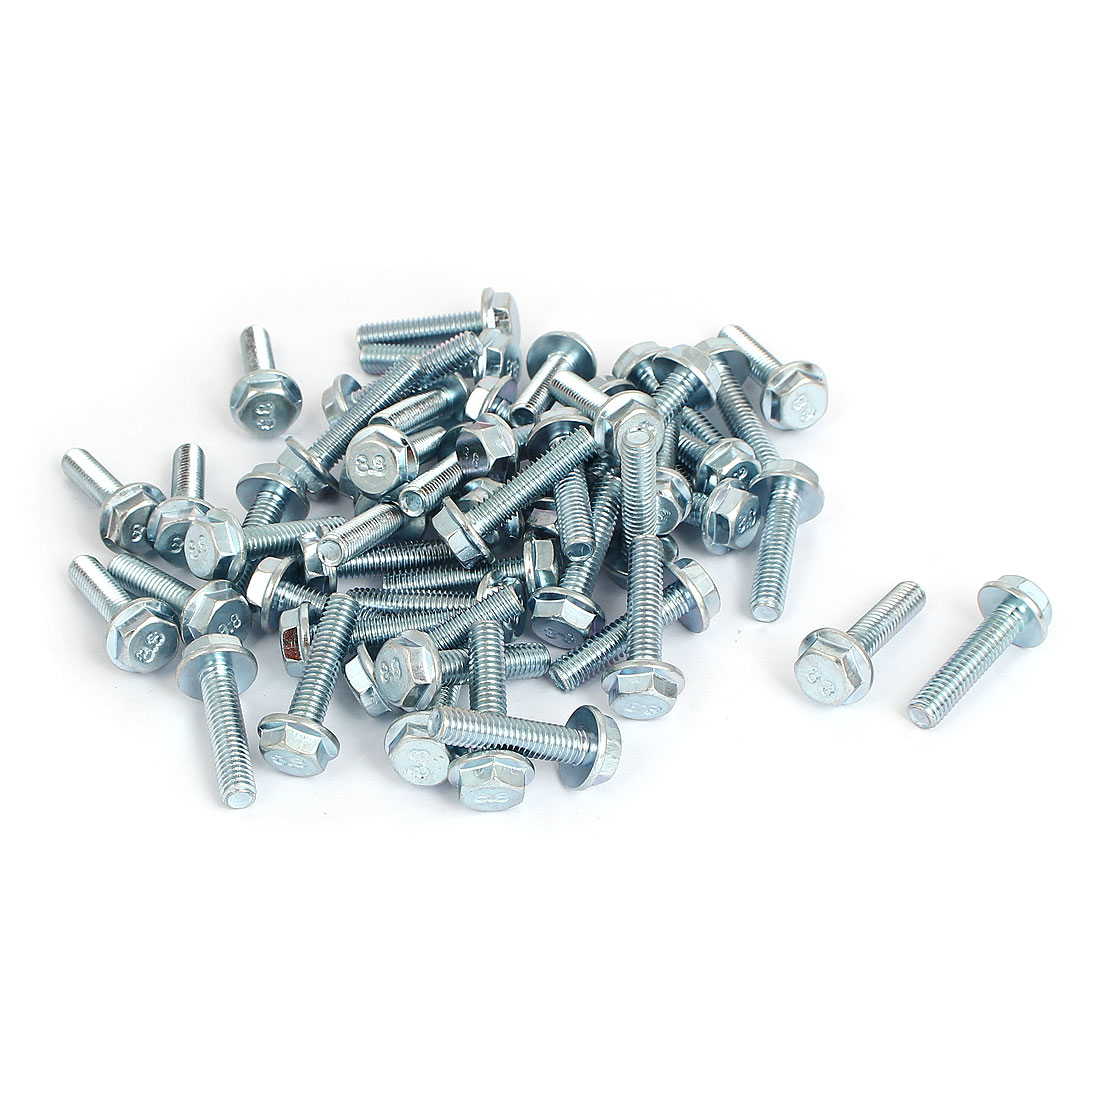 M6x25mm Grade 8.8 Metric Hex Flange Screws Bolts 50pcs